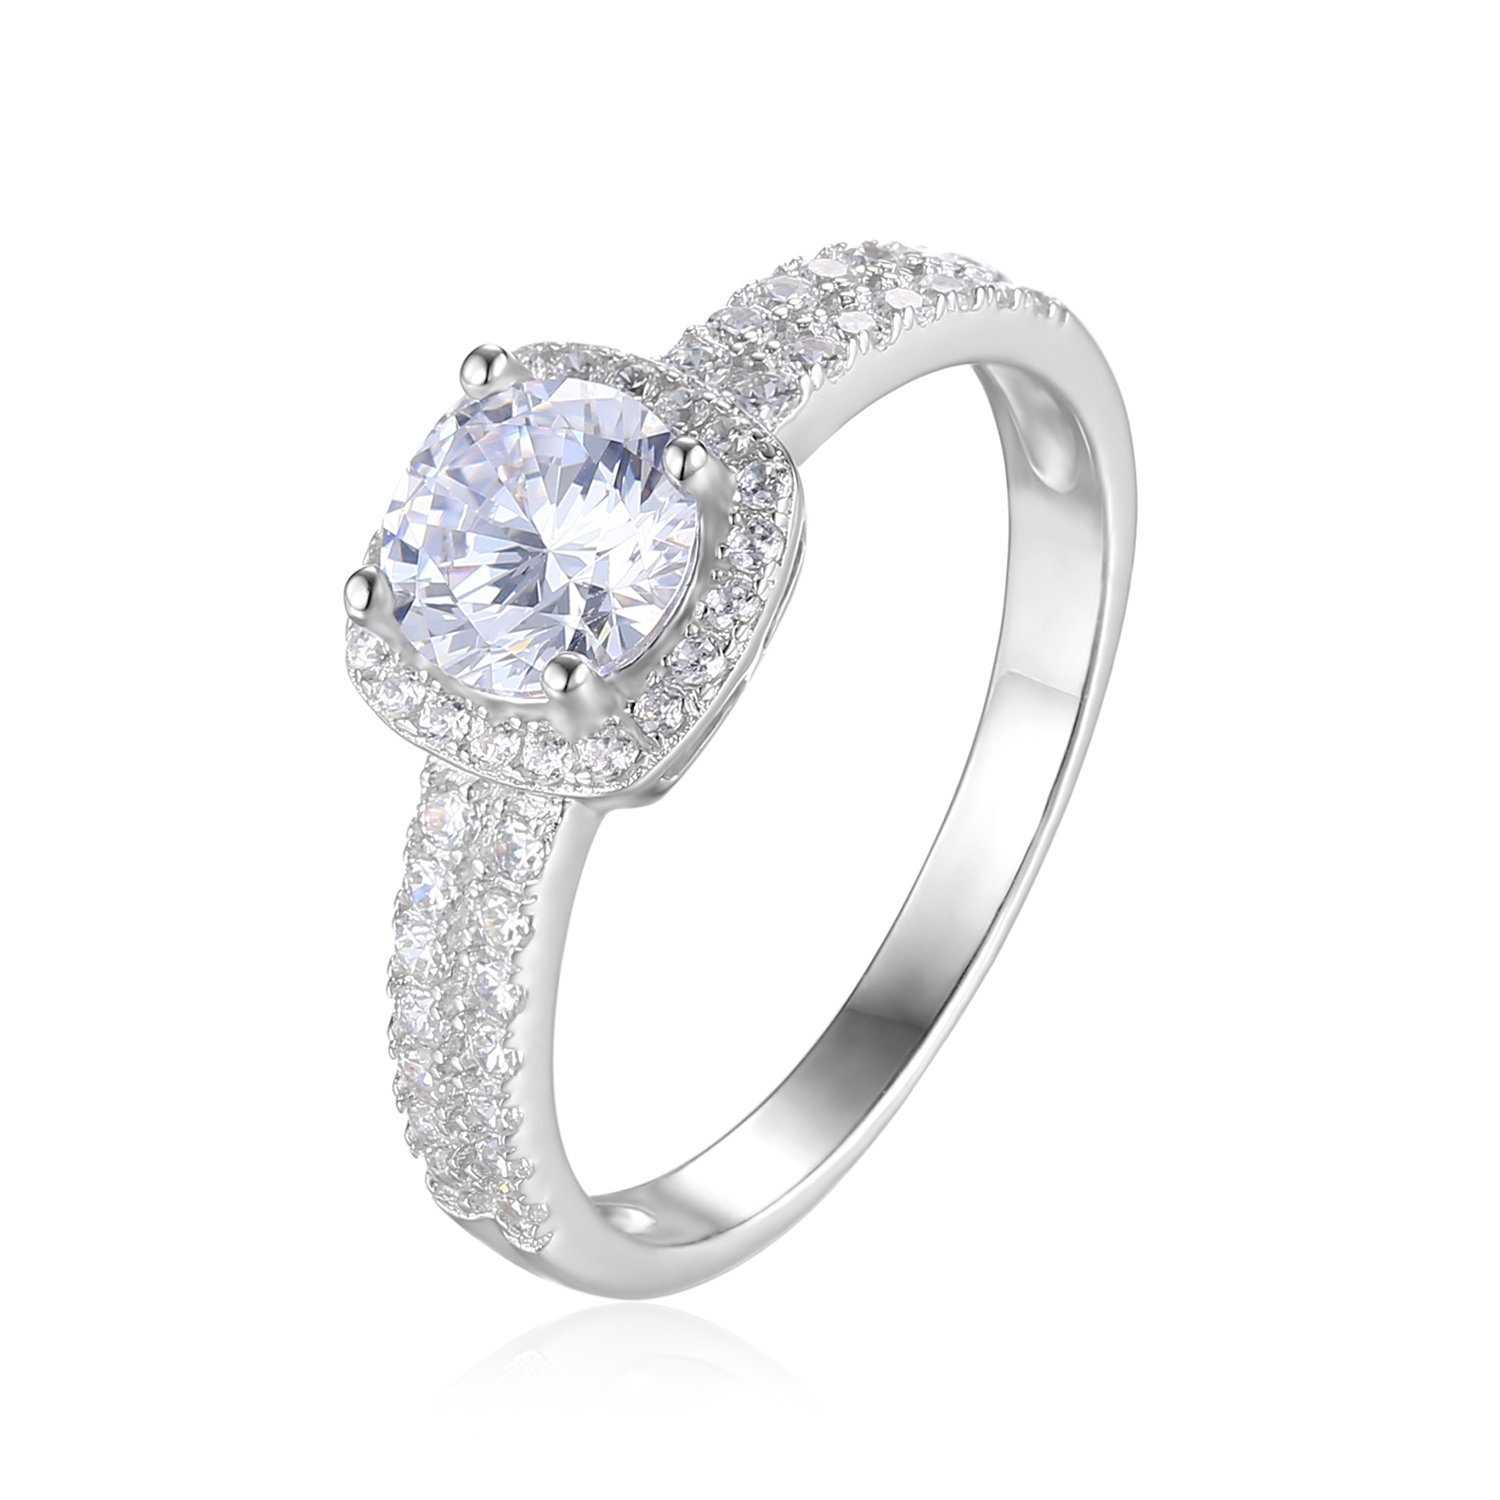 JewelryPalace Anillo Halo Compromiso 1ct Zirconia Cúbica ...